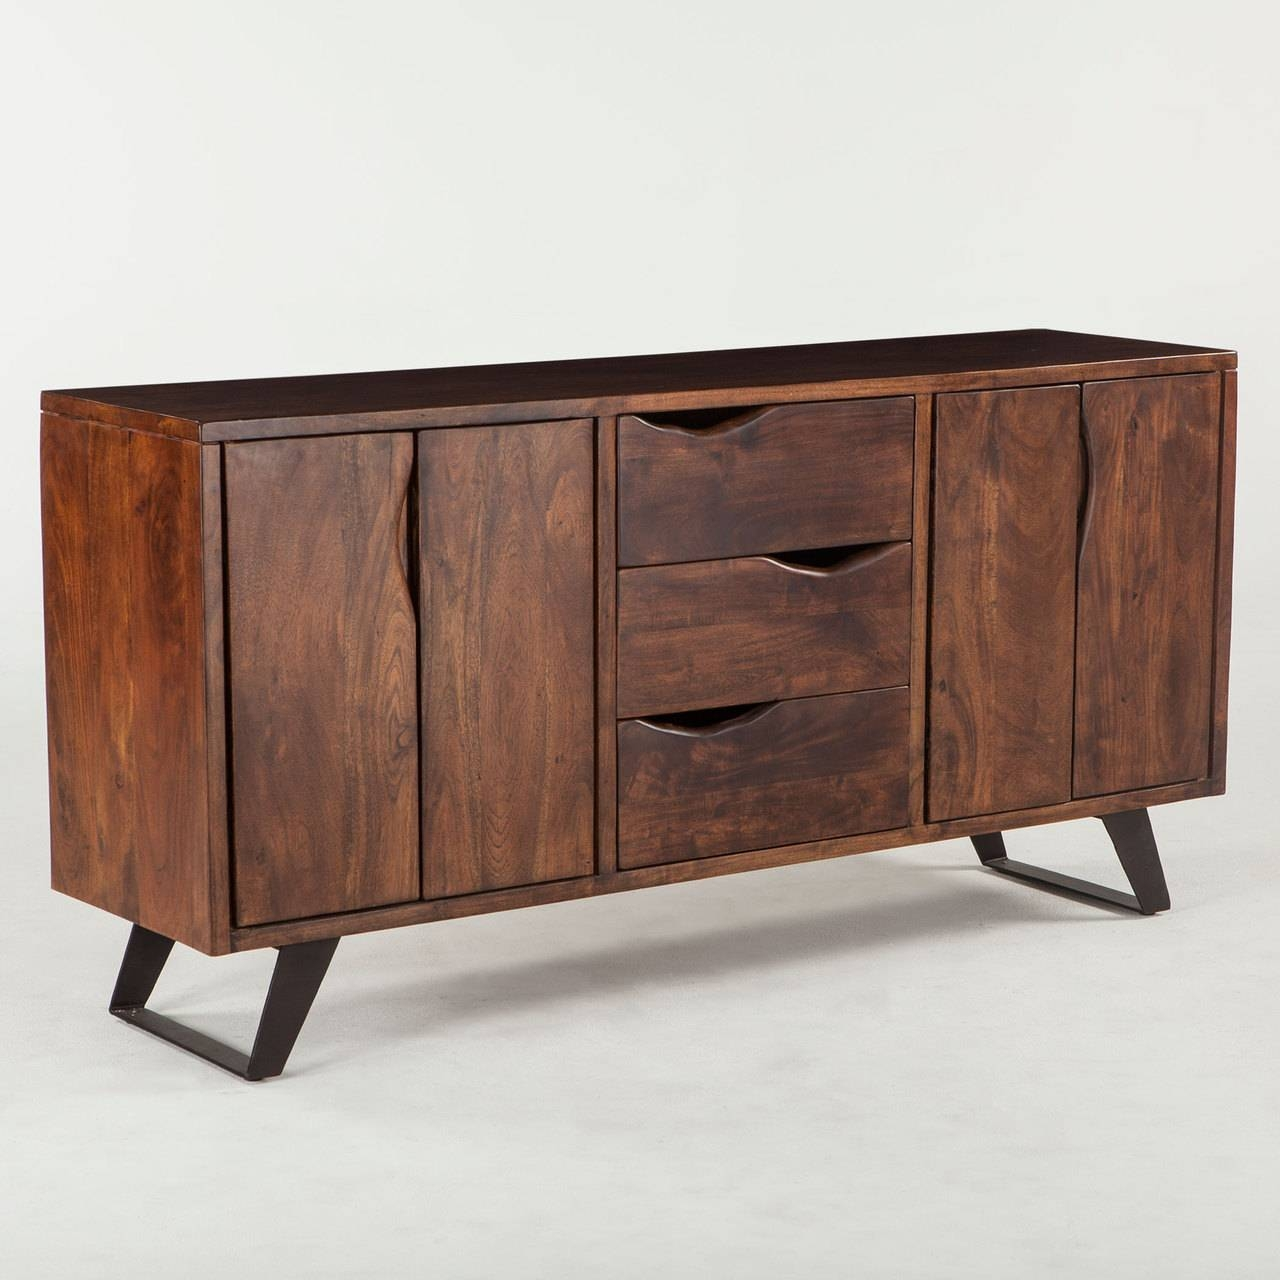 London Loft 68″ Solid Wood Sideboard In Walnut W/ Steel Legs Regarding Real Wood Sideboard (#8 of 20)